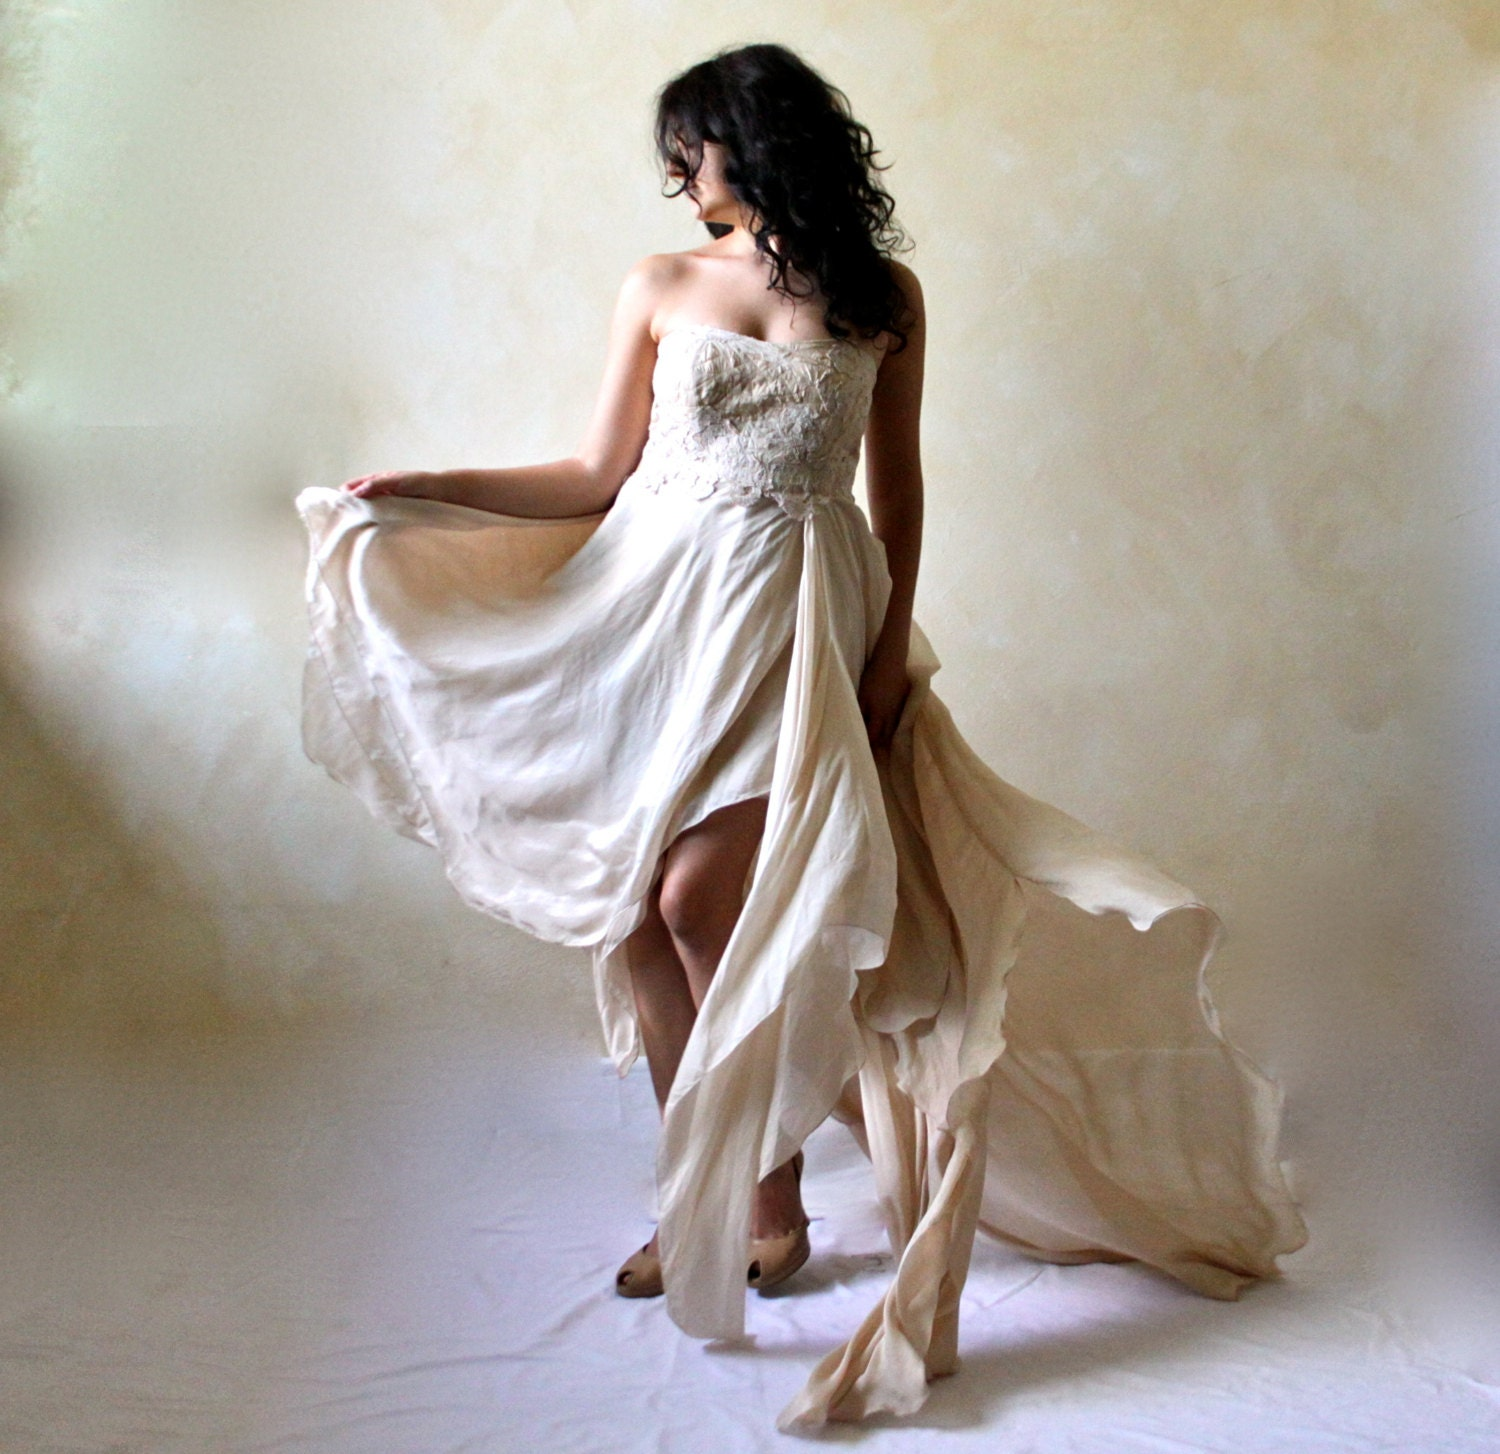 Alternative Wedding Dress S London : Wedding dress boho bridal gown alternative